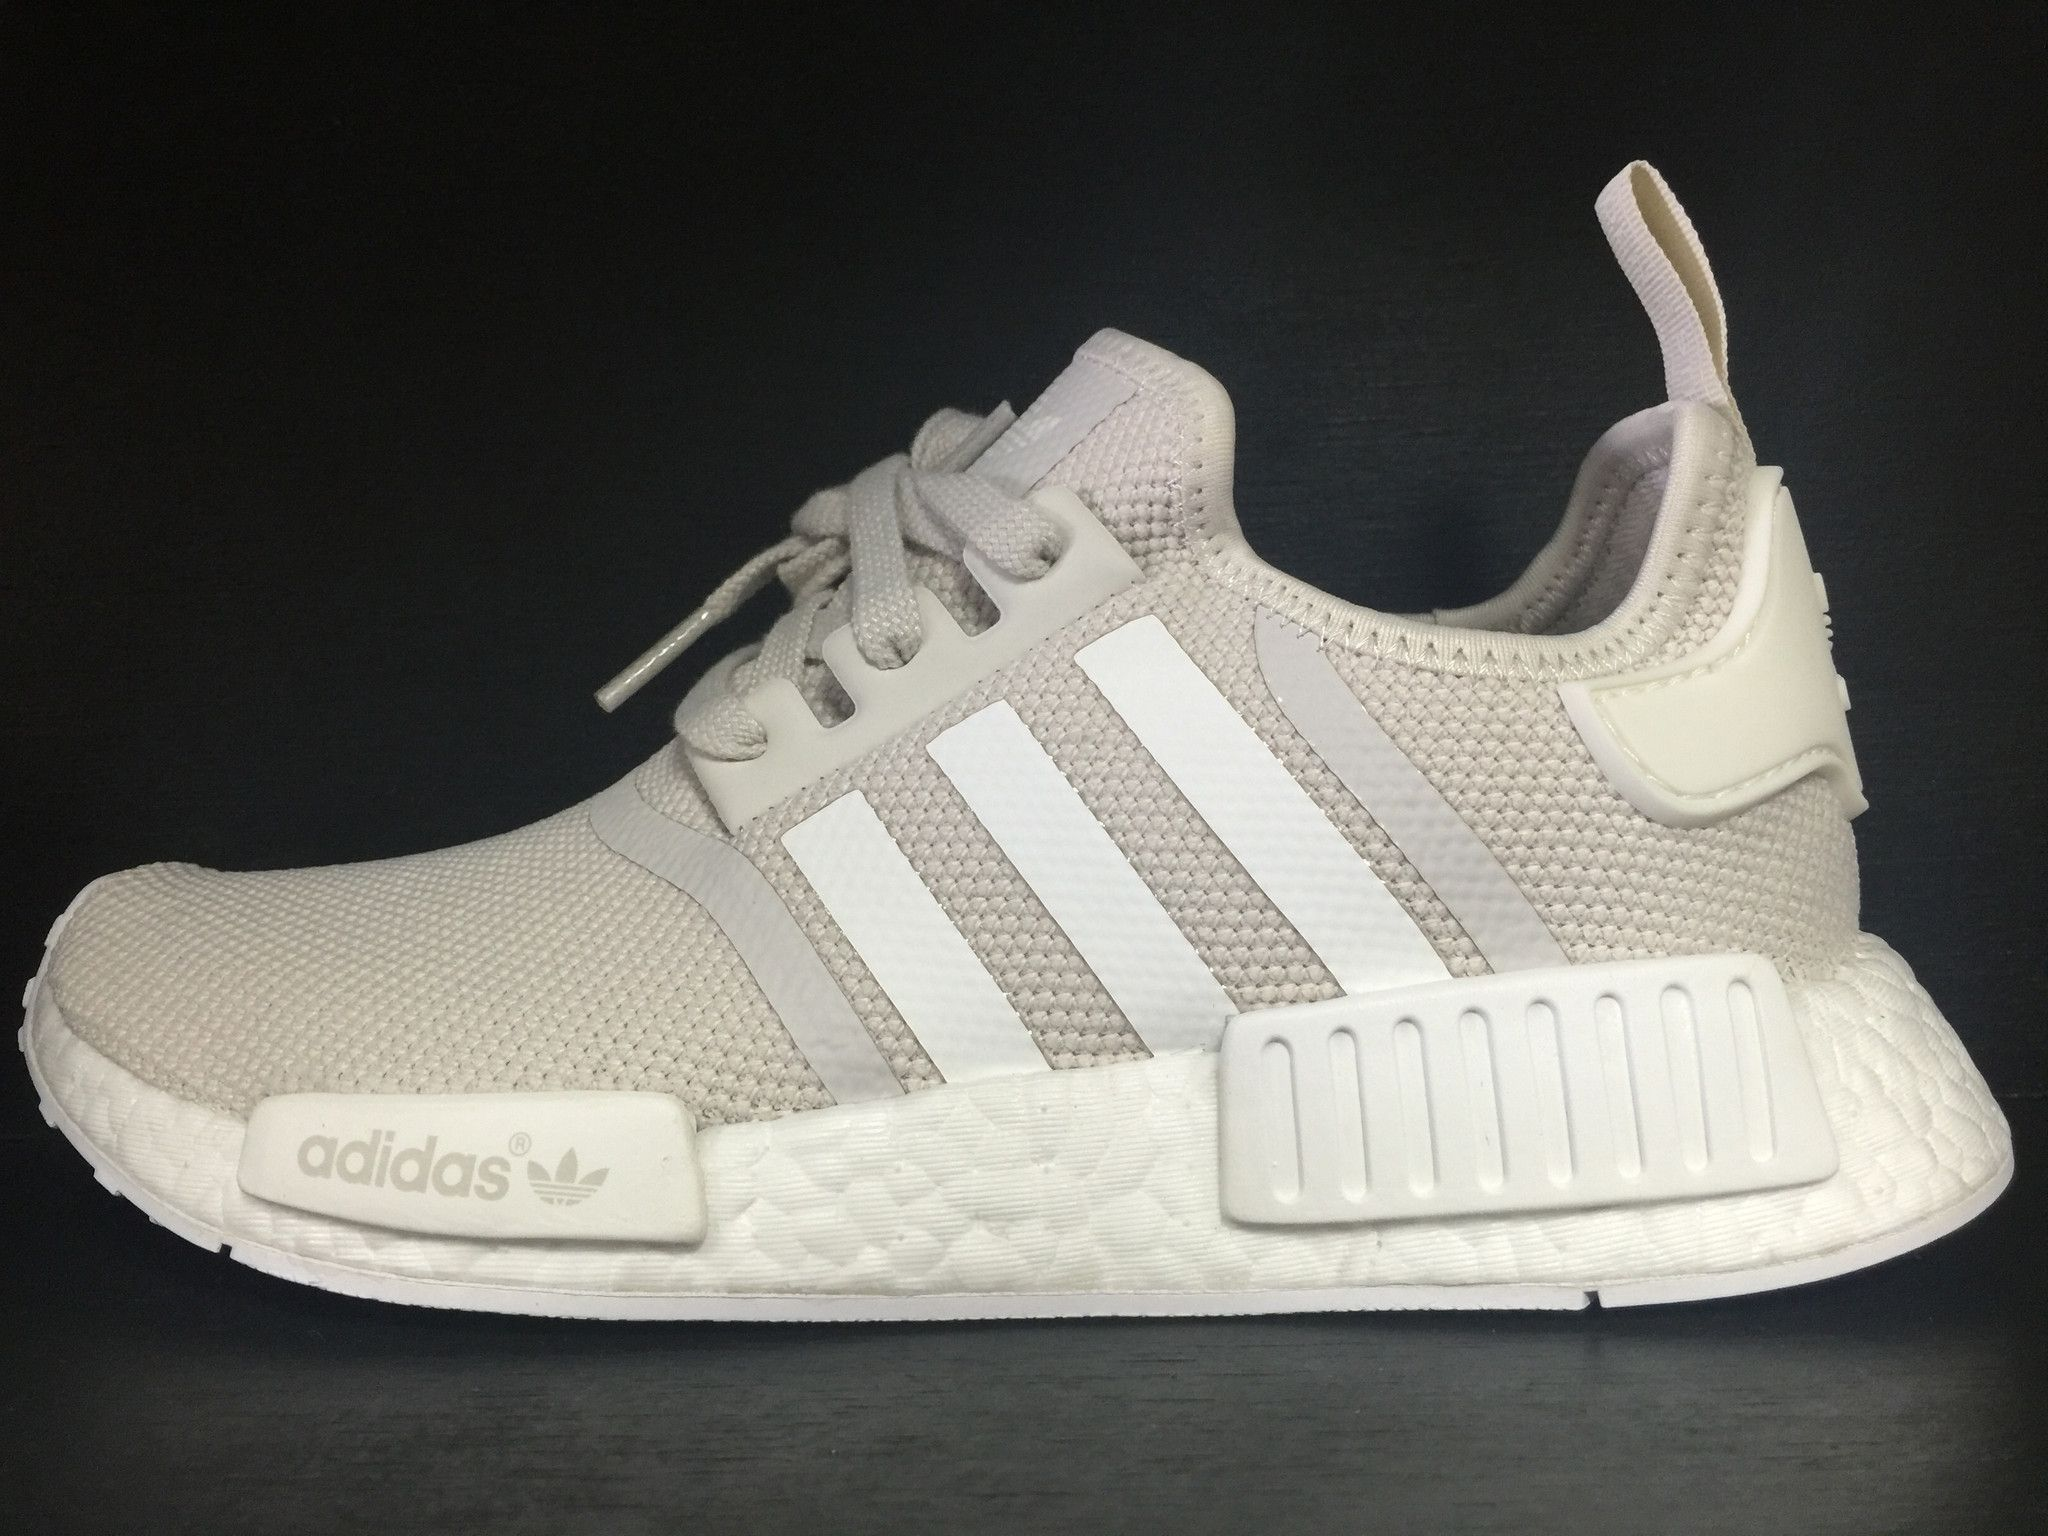 adidas nmd tennis shoes for women adidas nmd women salmon